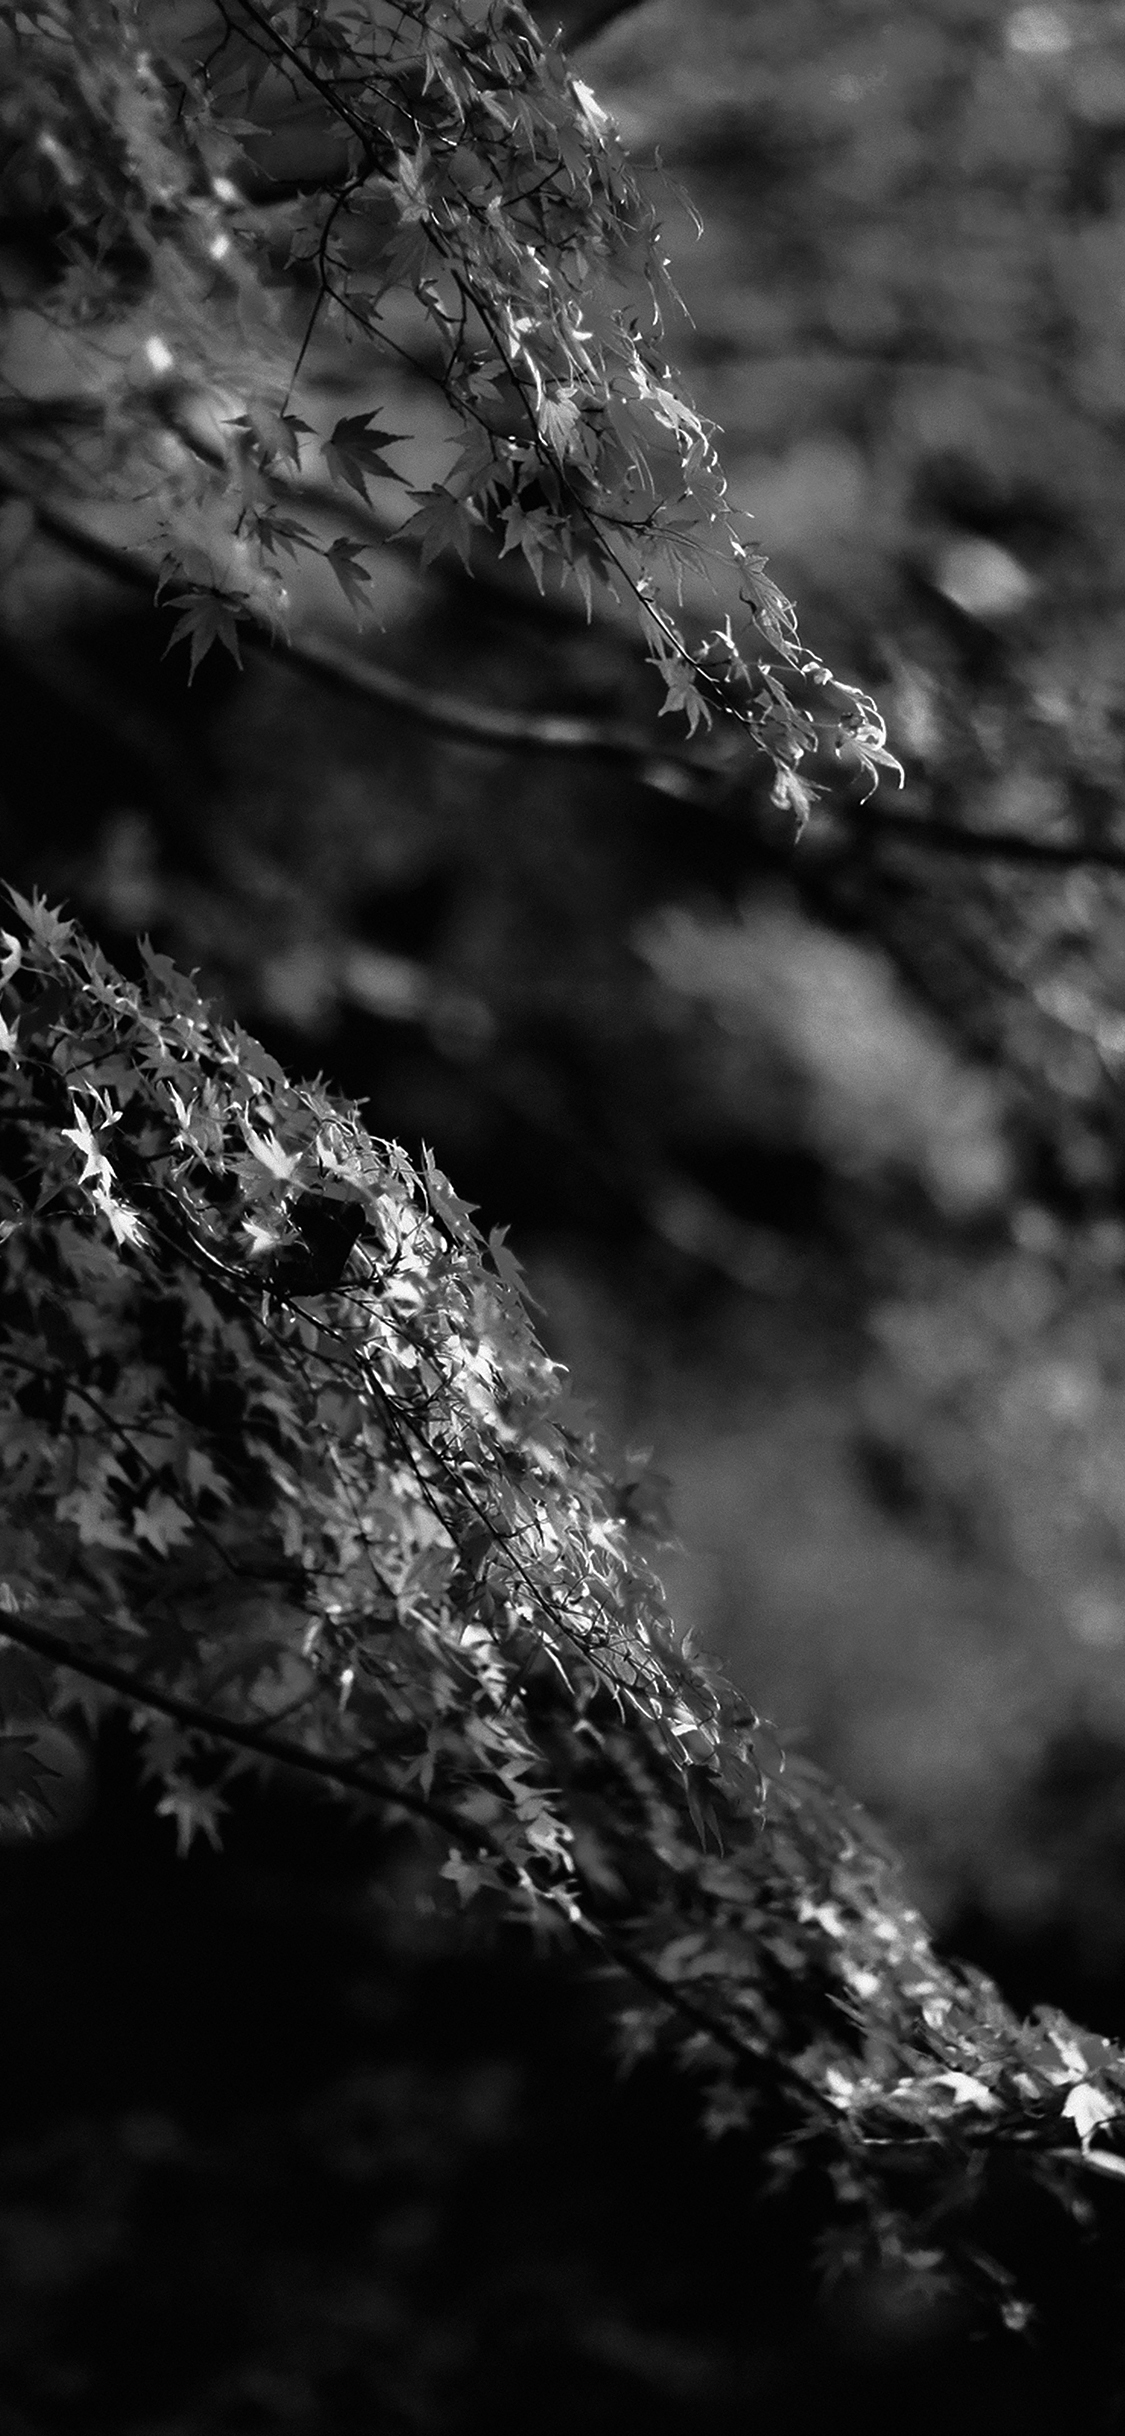 Japanese Wave Wallpaper Hd Mh98 Japanese Maple Tree Fall Nature Black And White Wallpaper